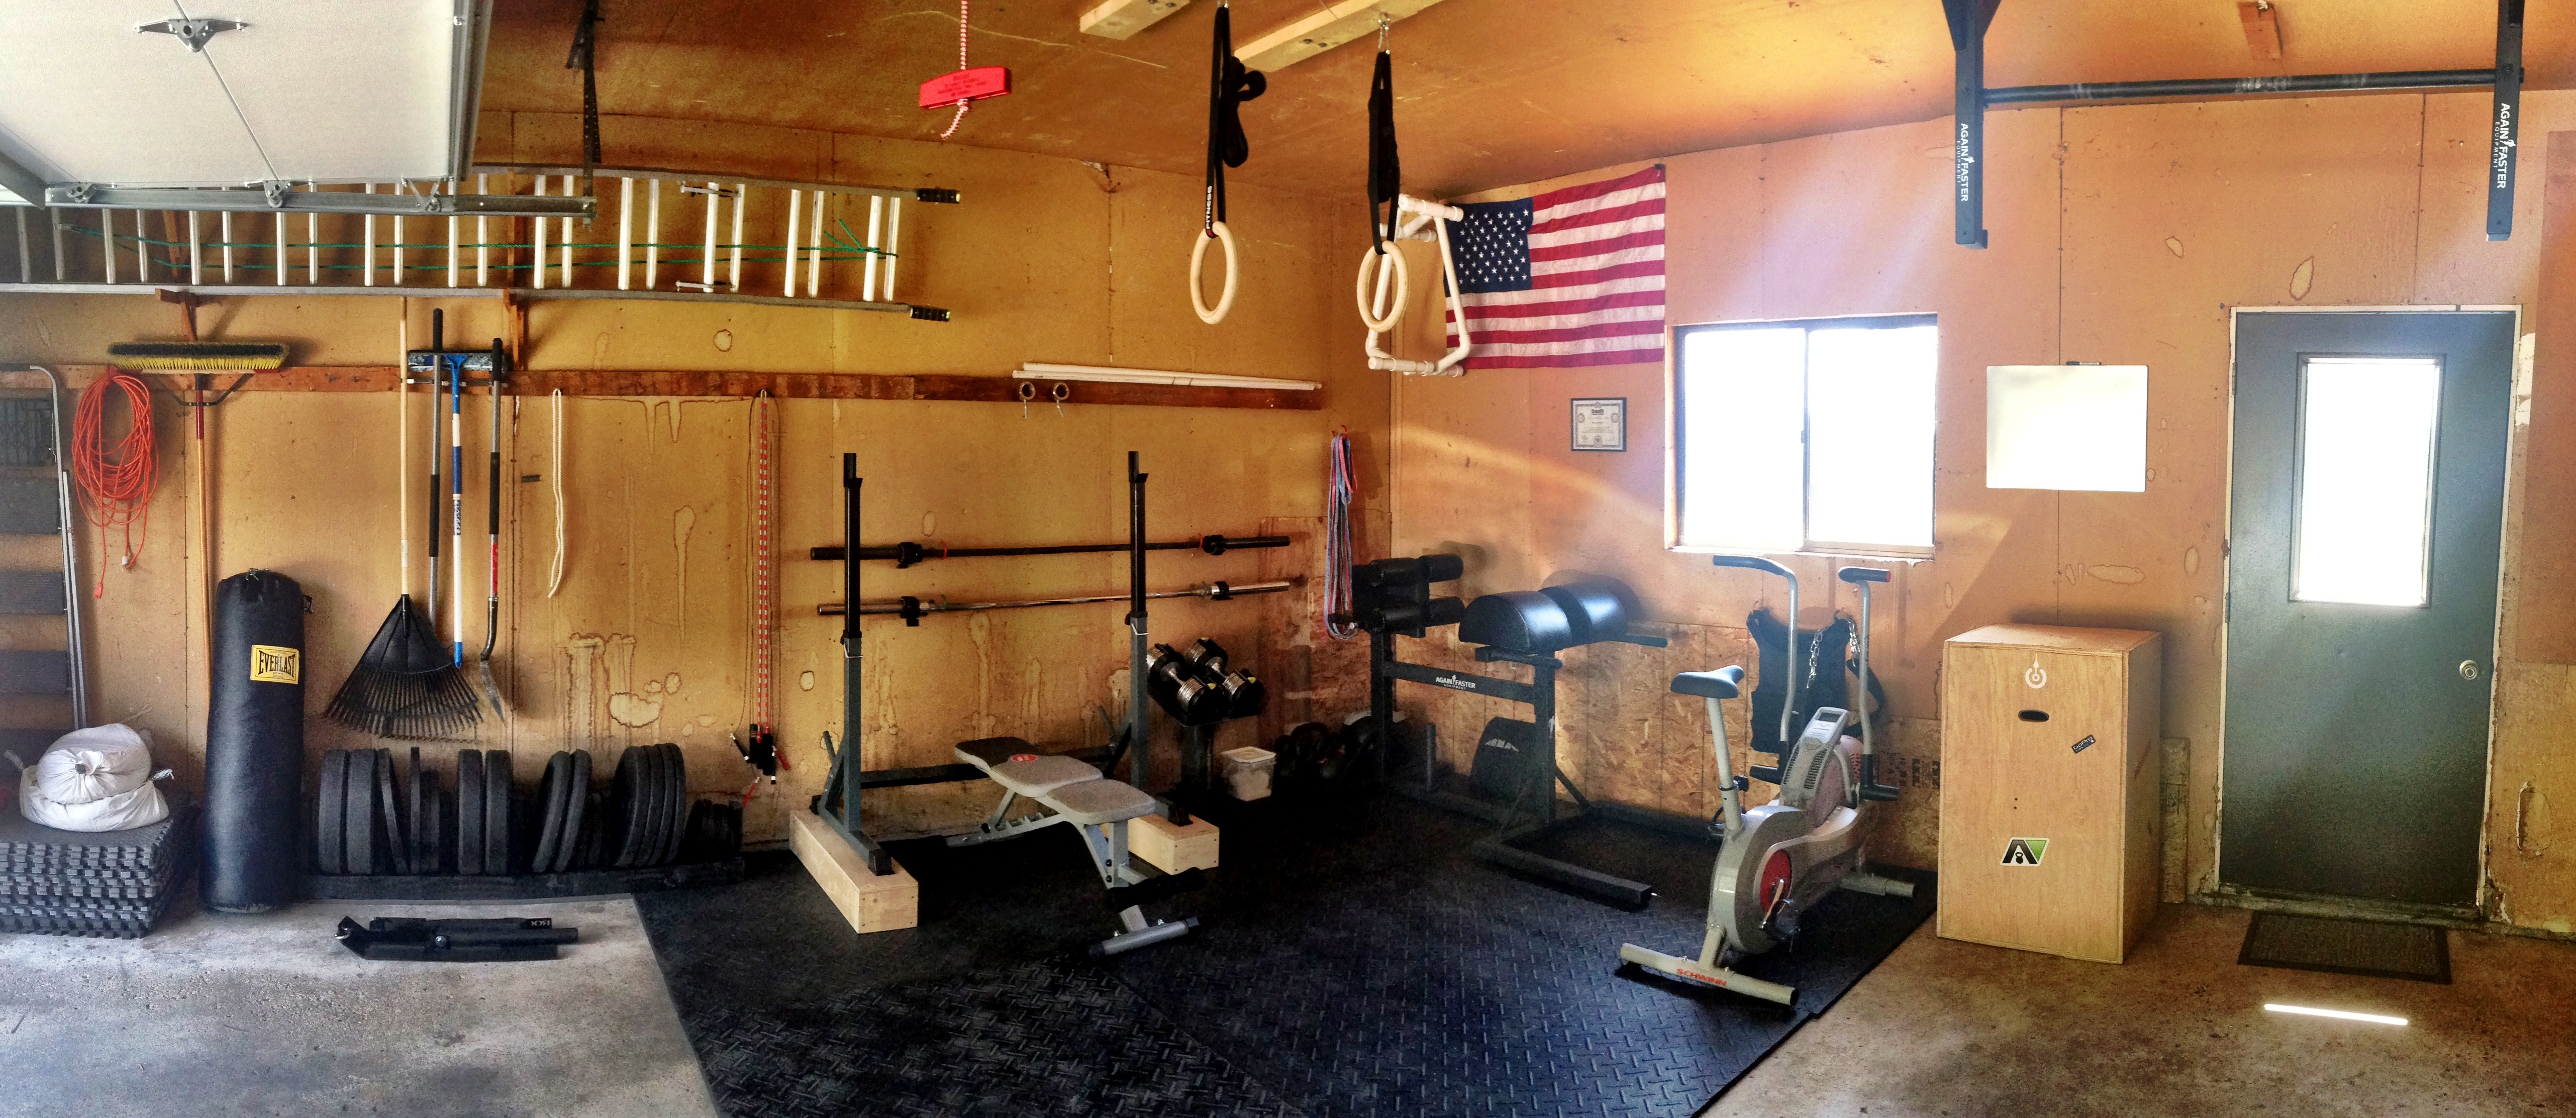 Version of the garage gym nick momrik s crossfit training